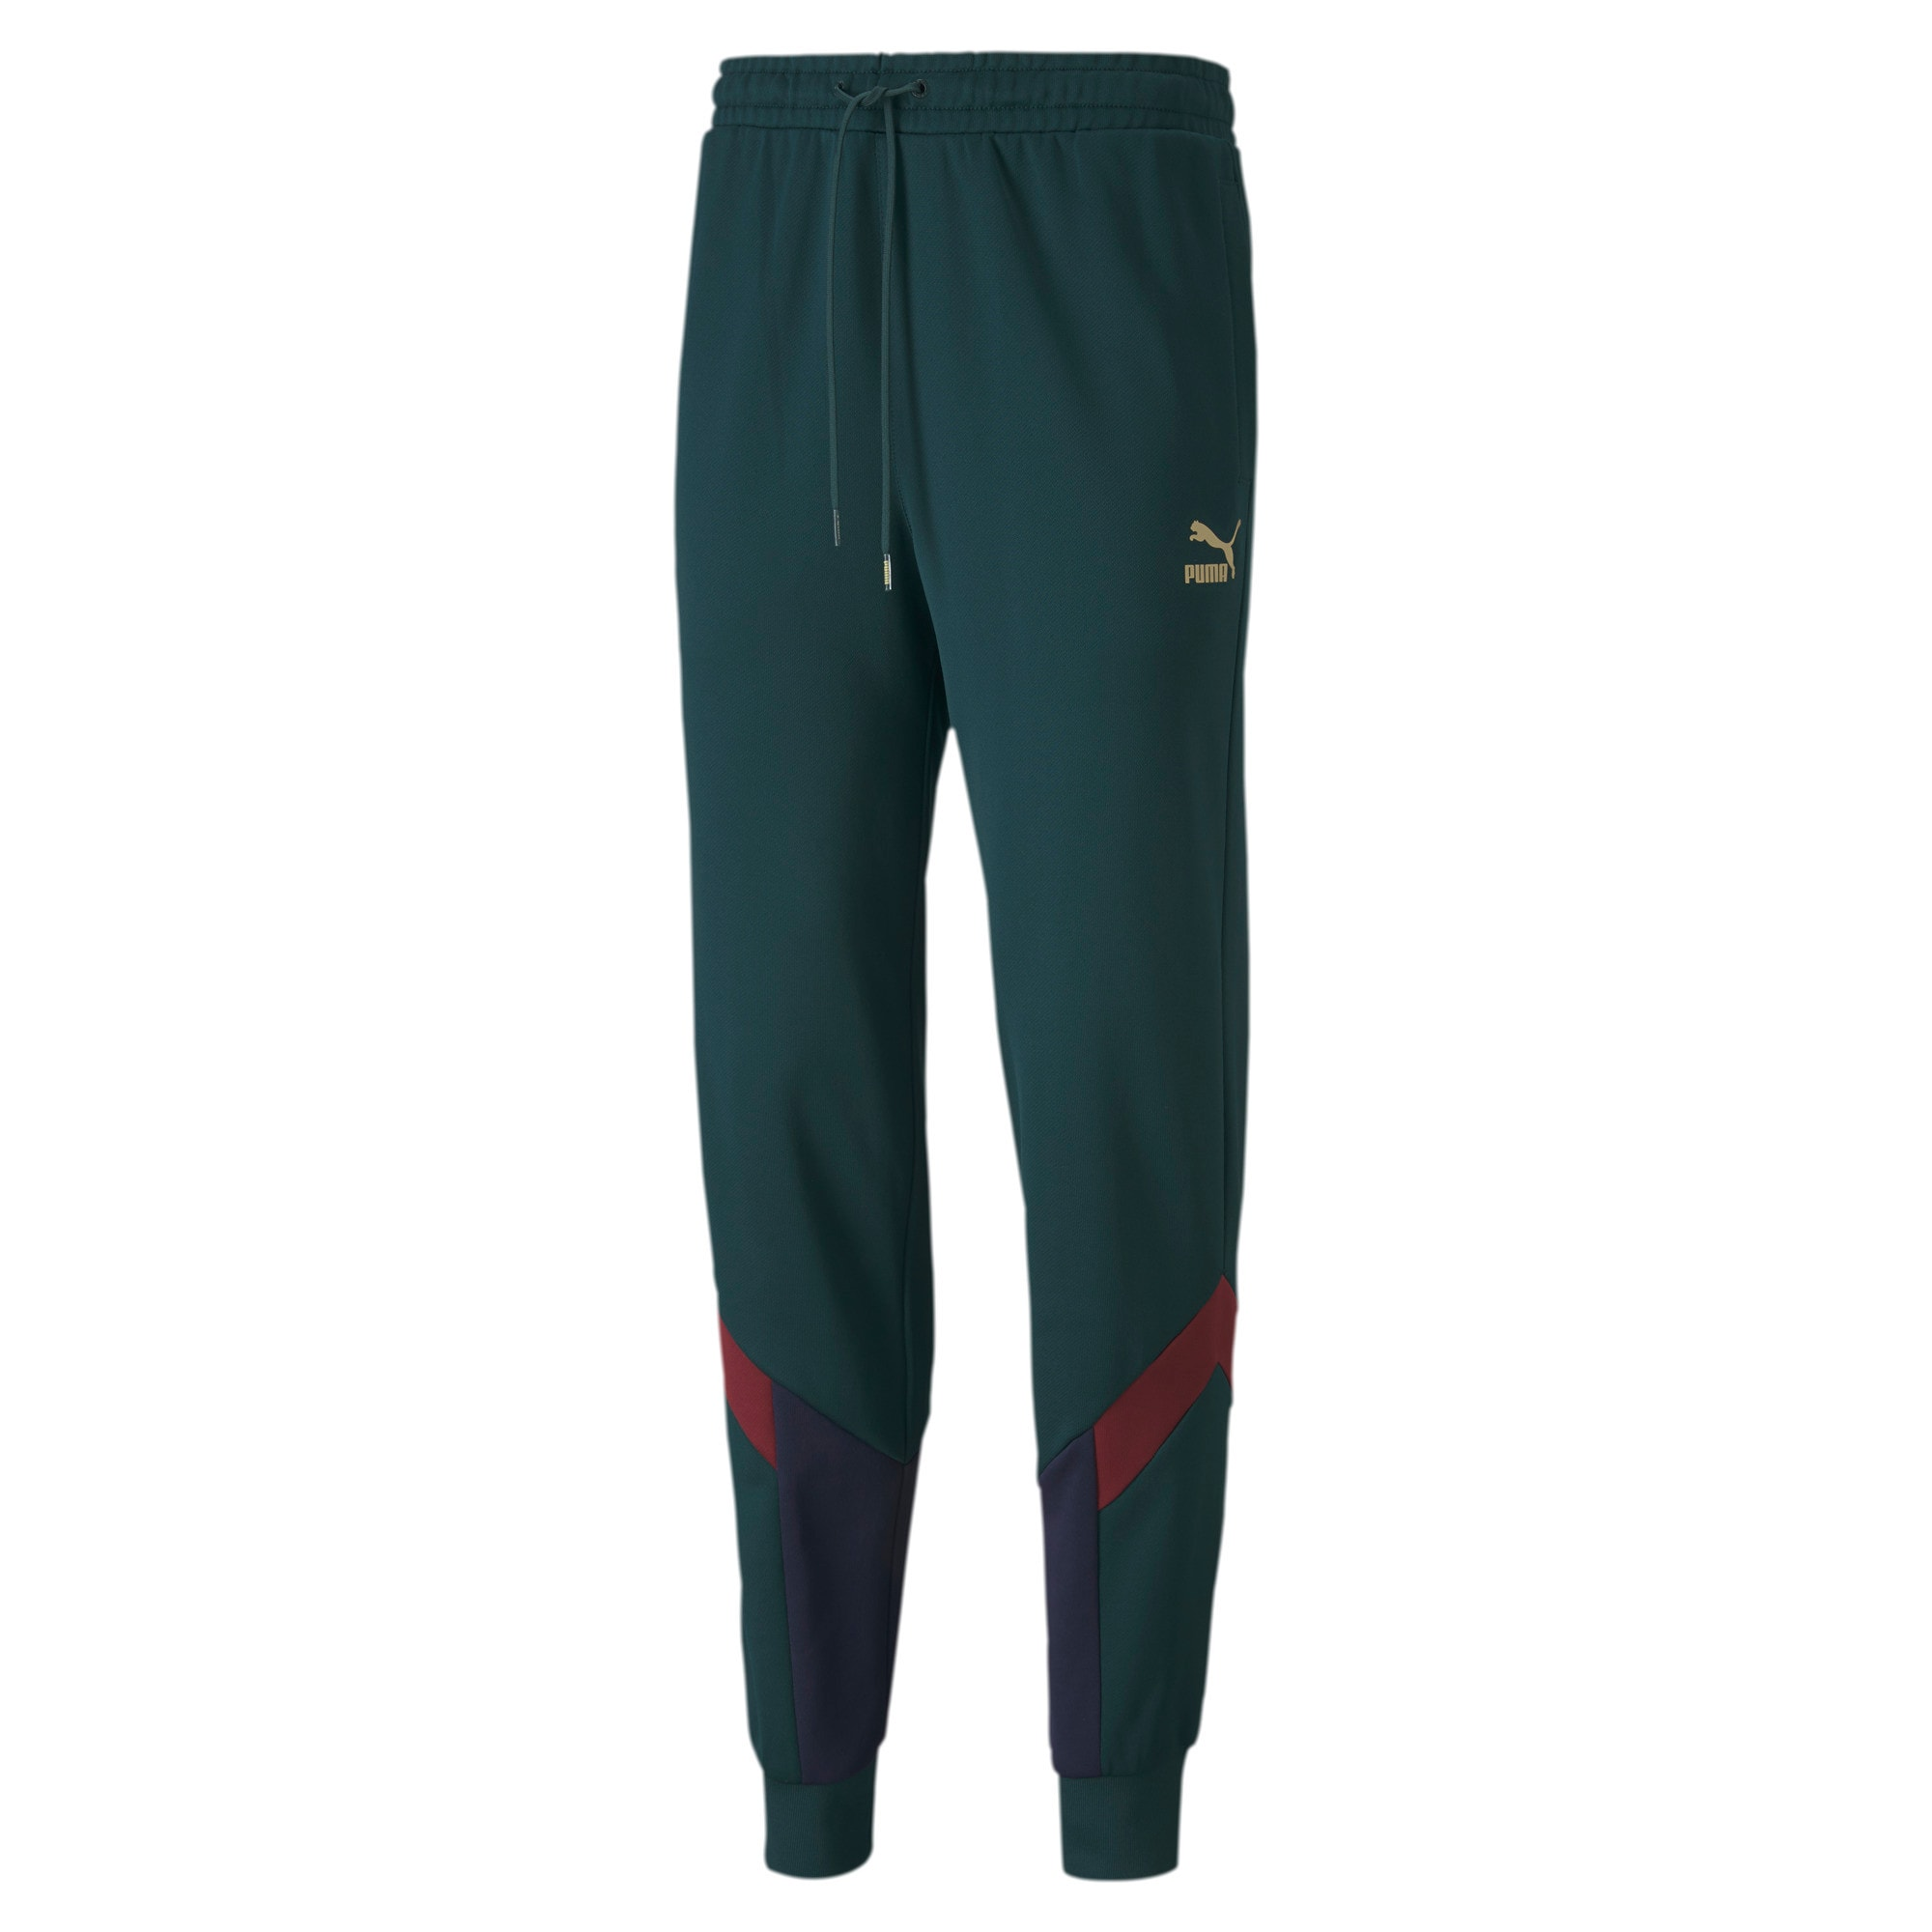 Thumbnail 1 of FIGC Iconic MCS Men's Track Pants, Ponderosa Pine-Peacoat, medium